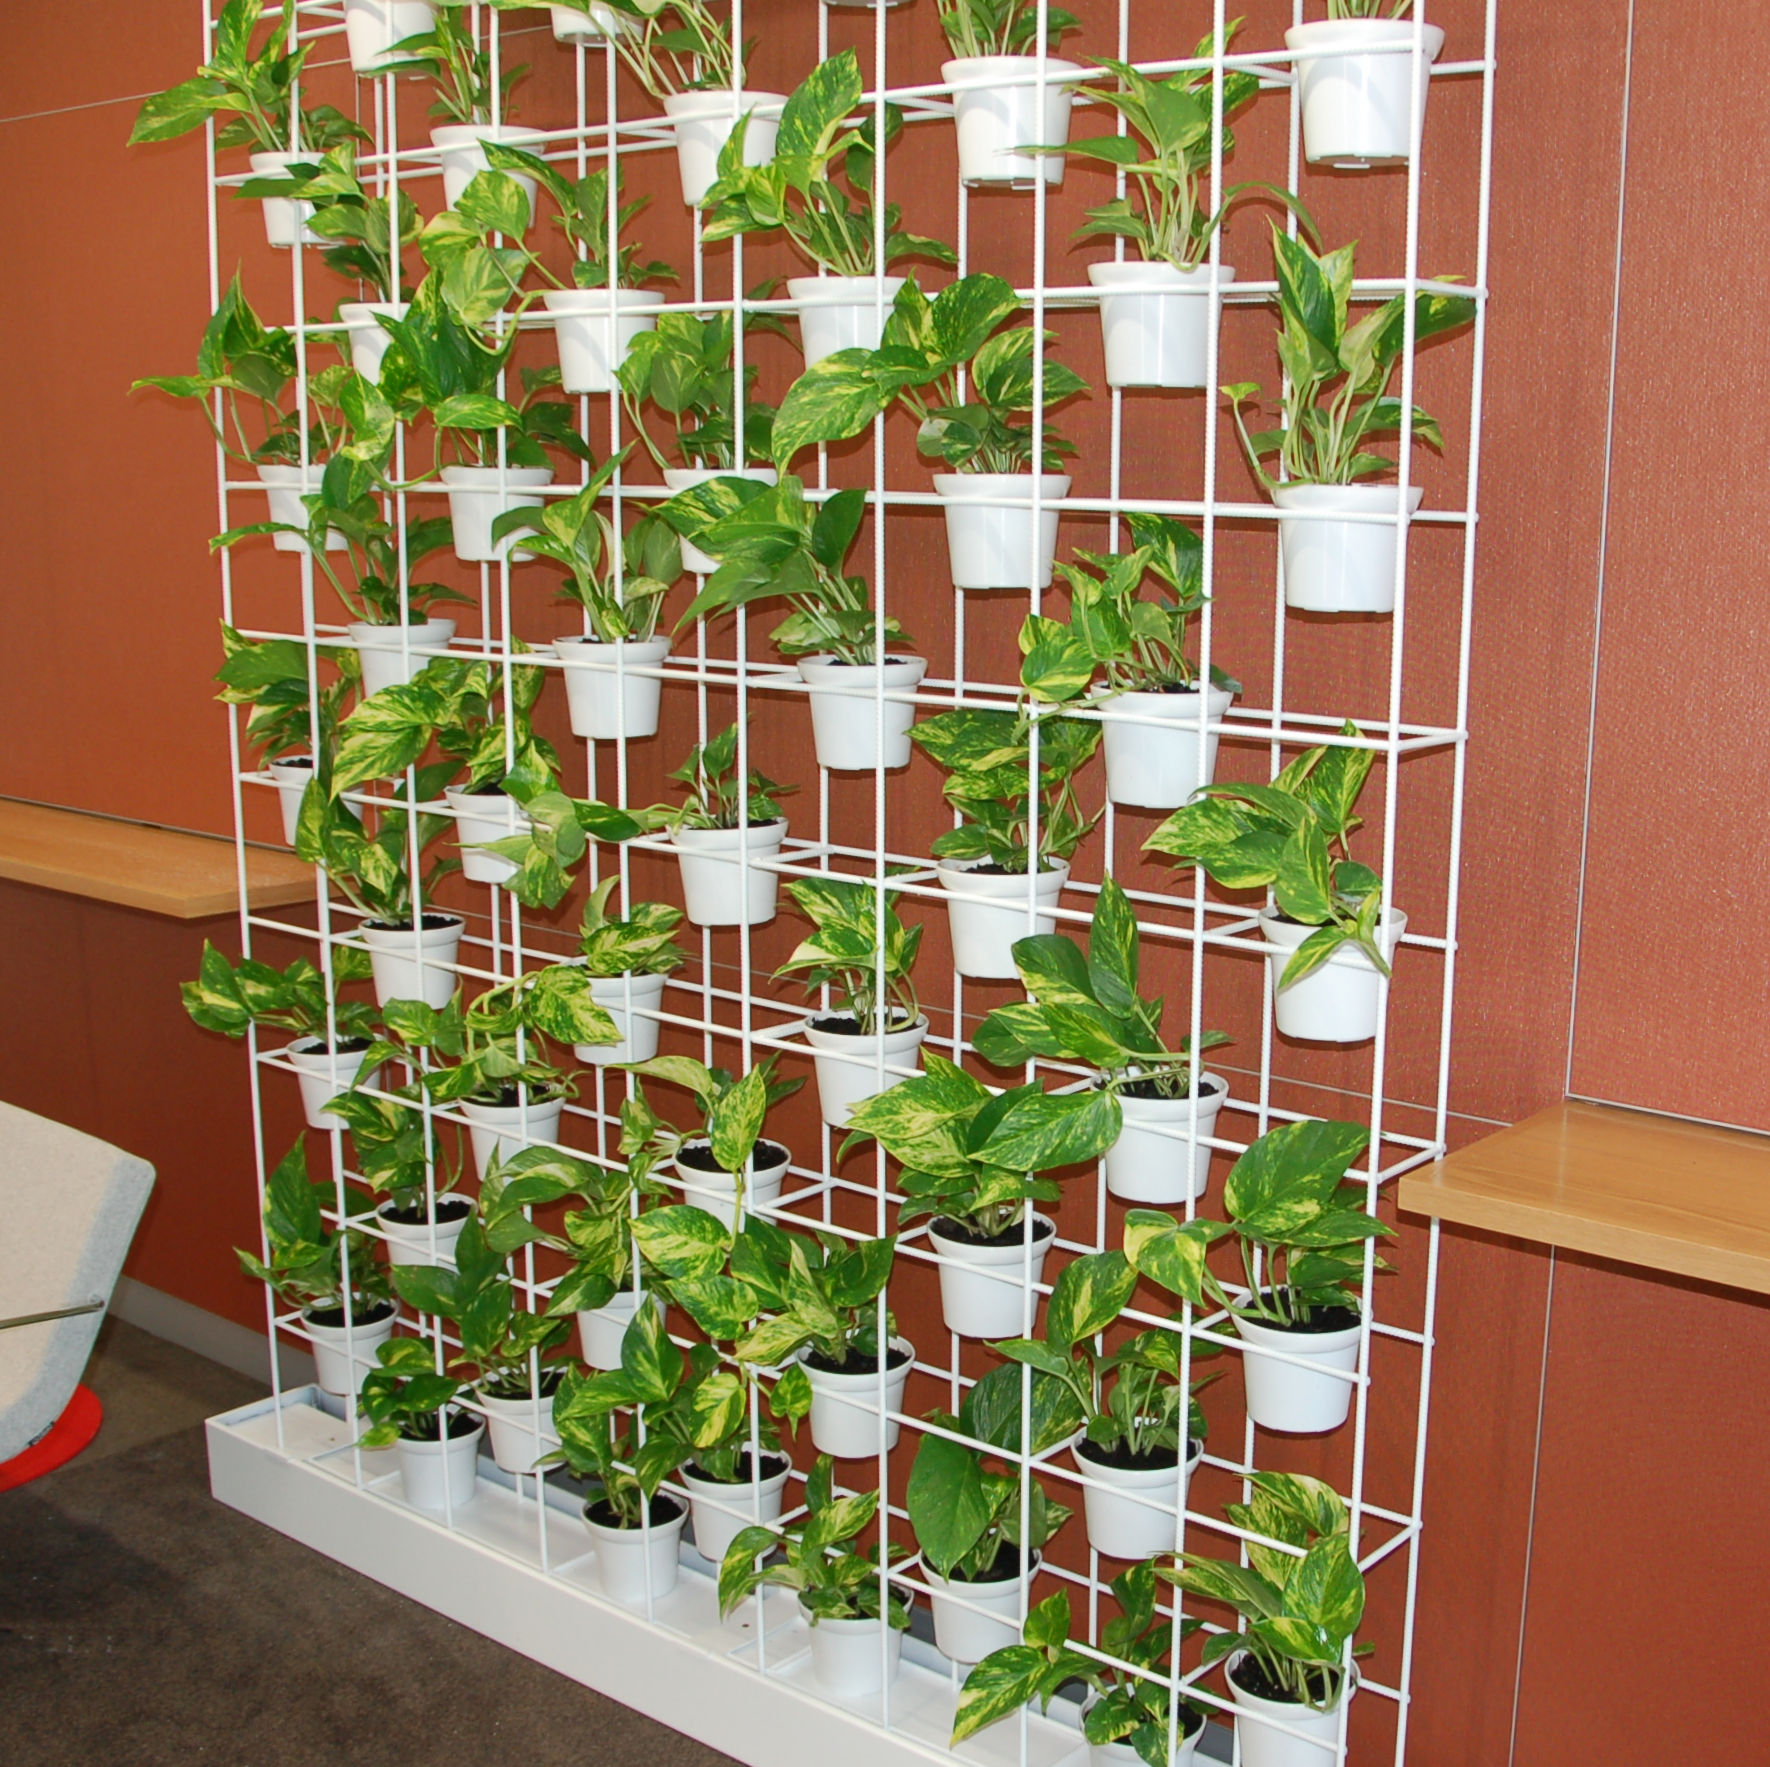 Showing a Schiavello Vertical Garden. It is basically pot plants sitting in a specially built white wire frame.